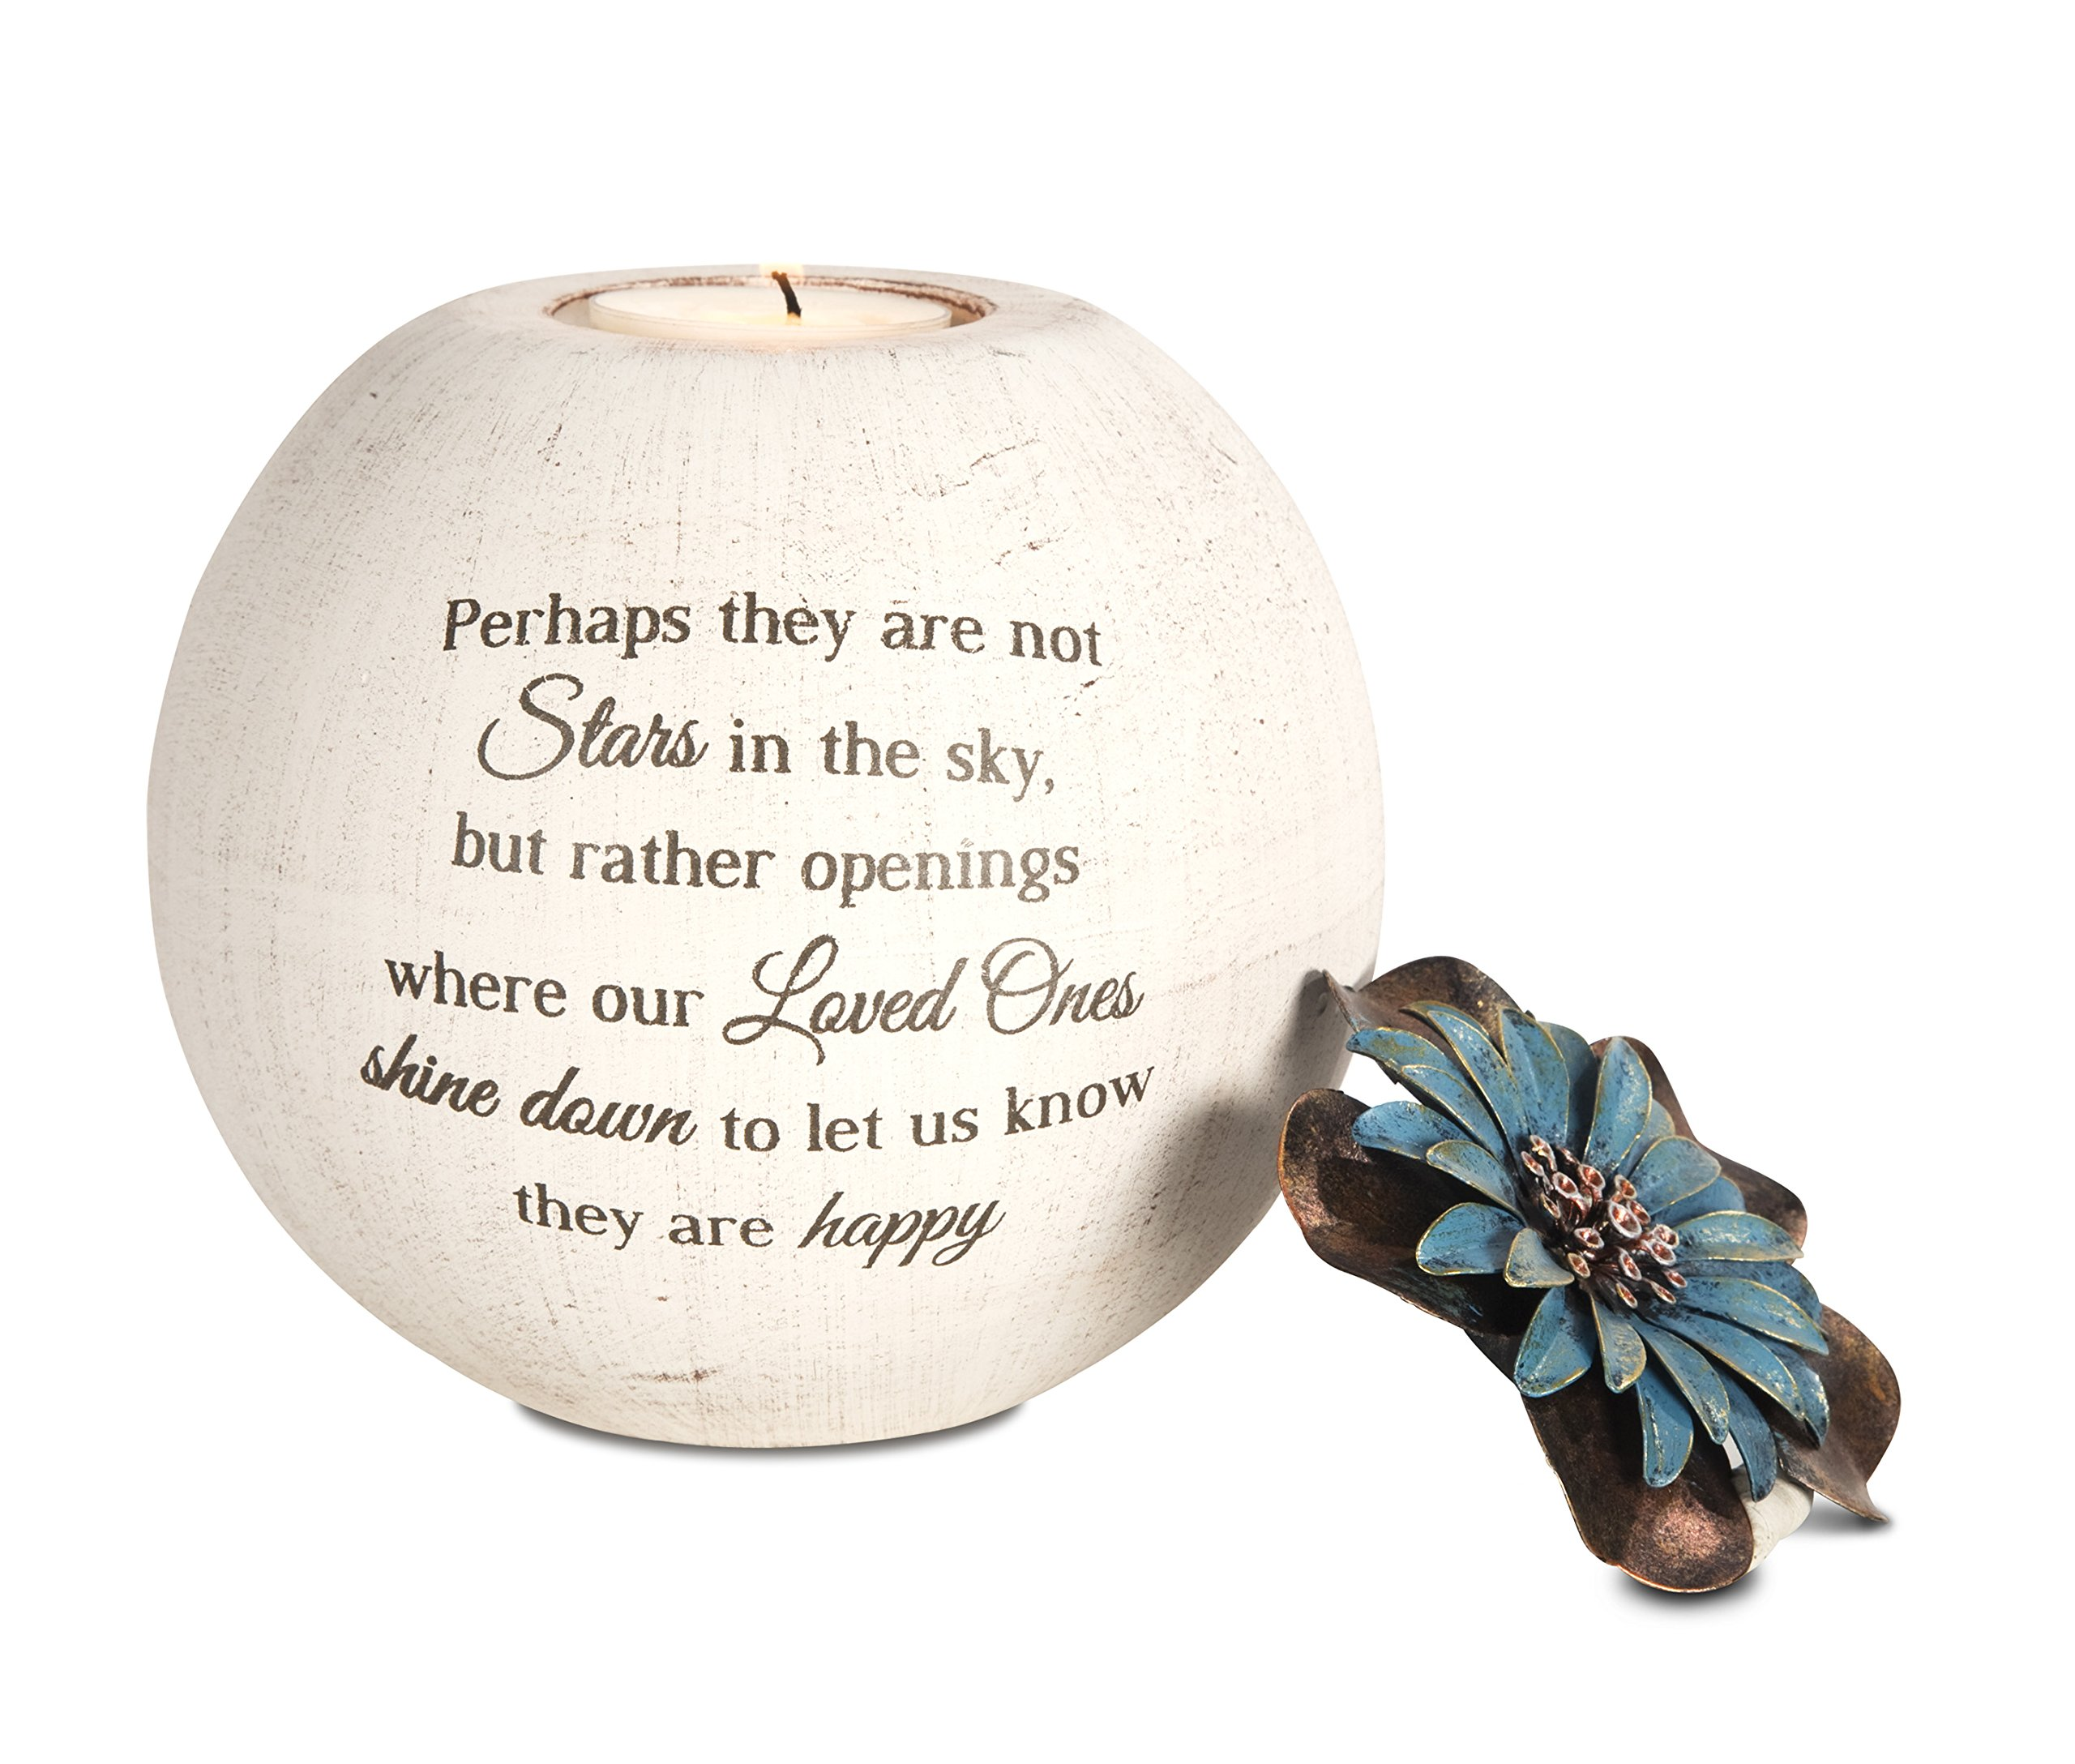 Pavilion Gift Company 19095 Stars in The Sky Candle Holder, 5-Inch, Terra Cotta by Pavilion Gift Company (Image #1)